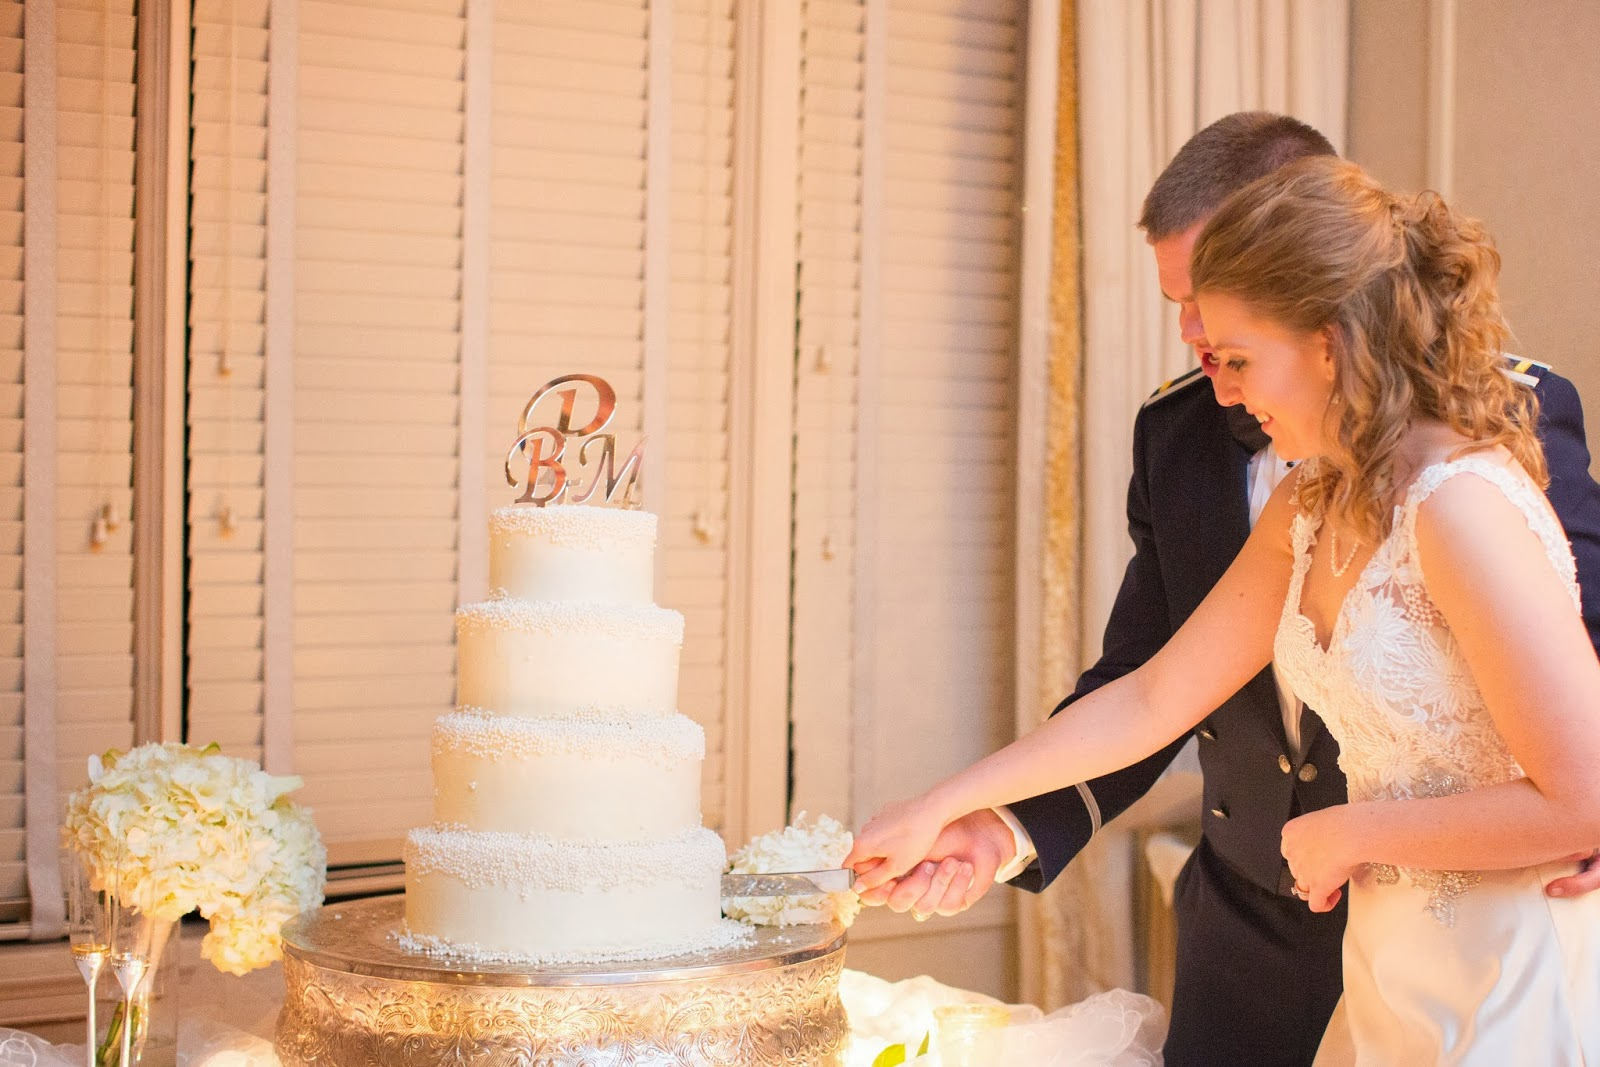 Photo By: T.Y. Photography Virginia Beach Wedding Cake